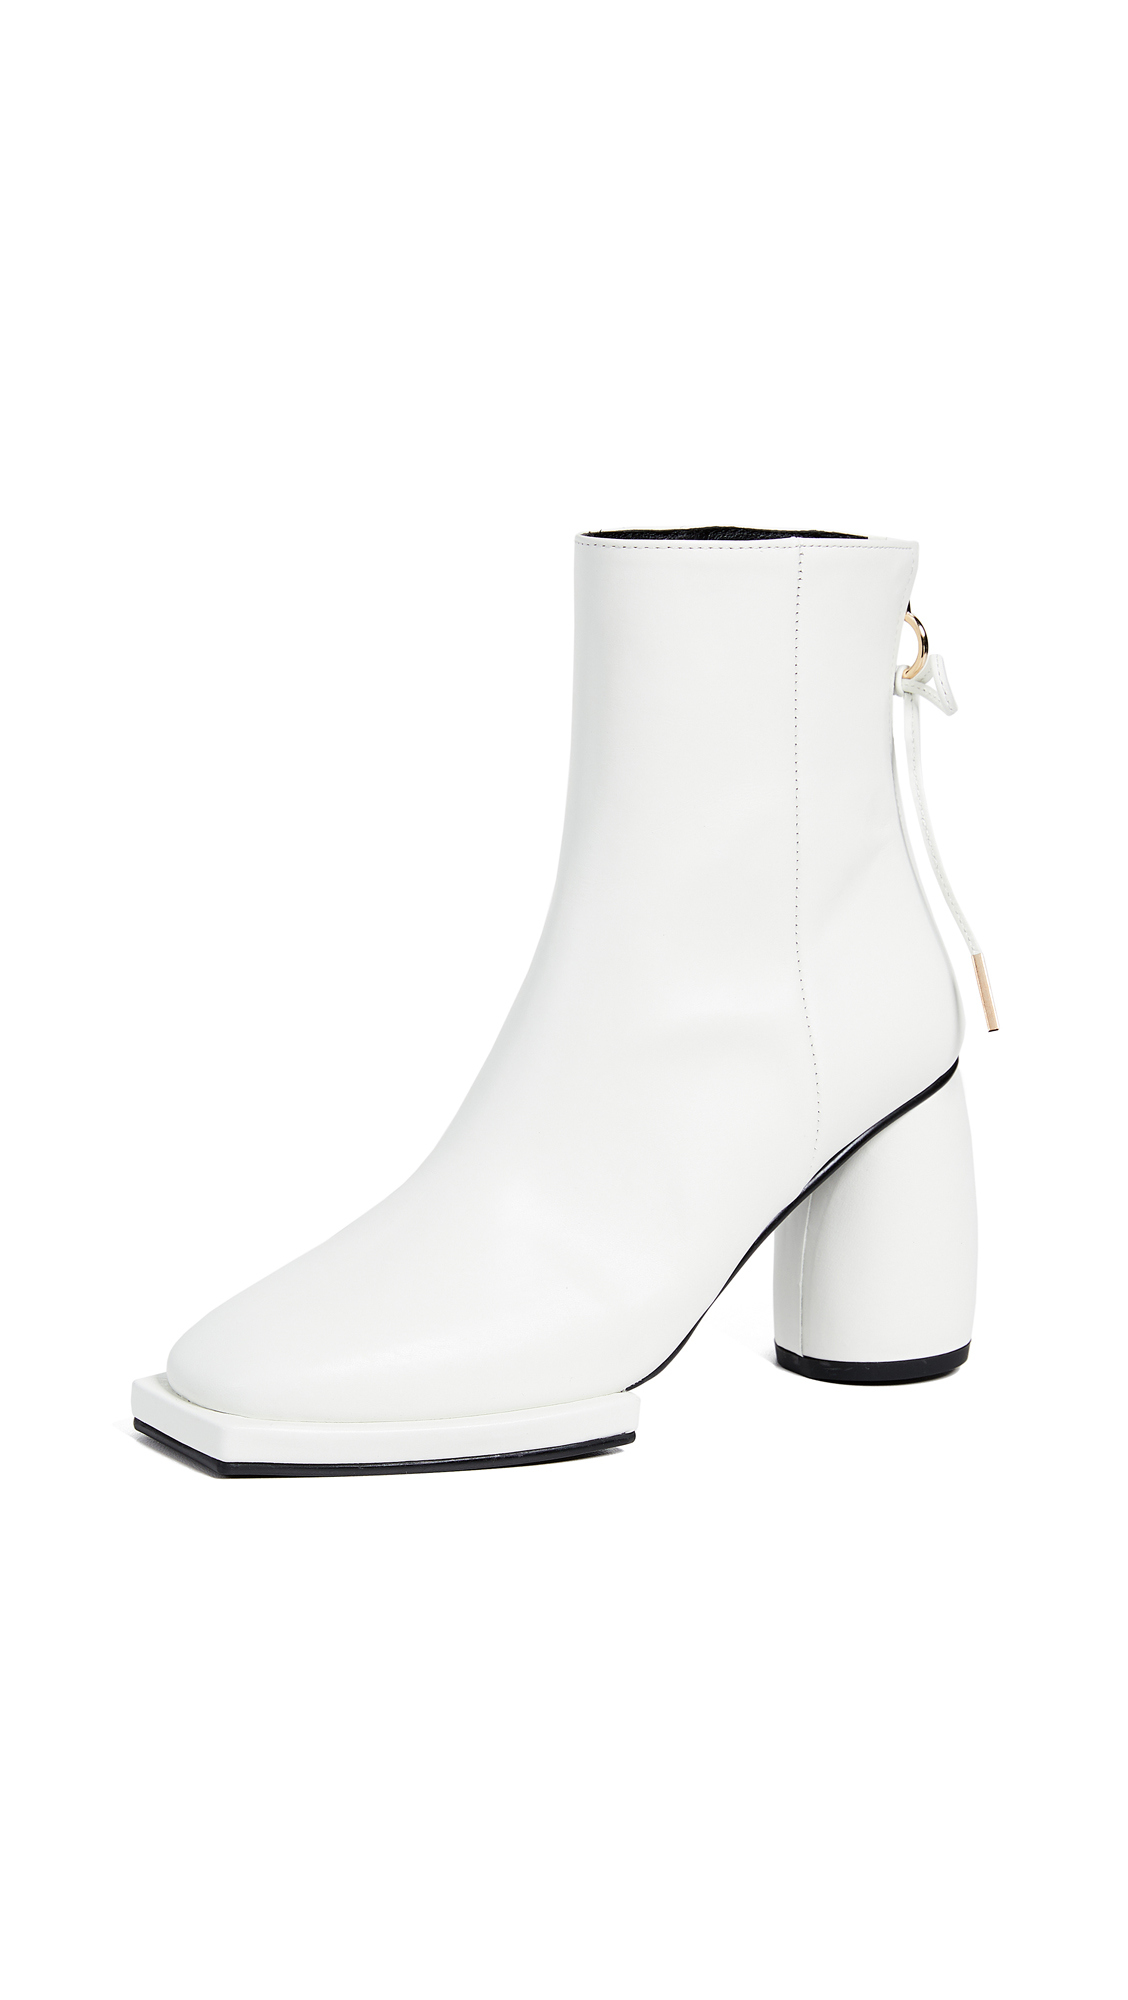 Square Ribbon Half Boots in White